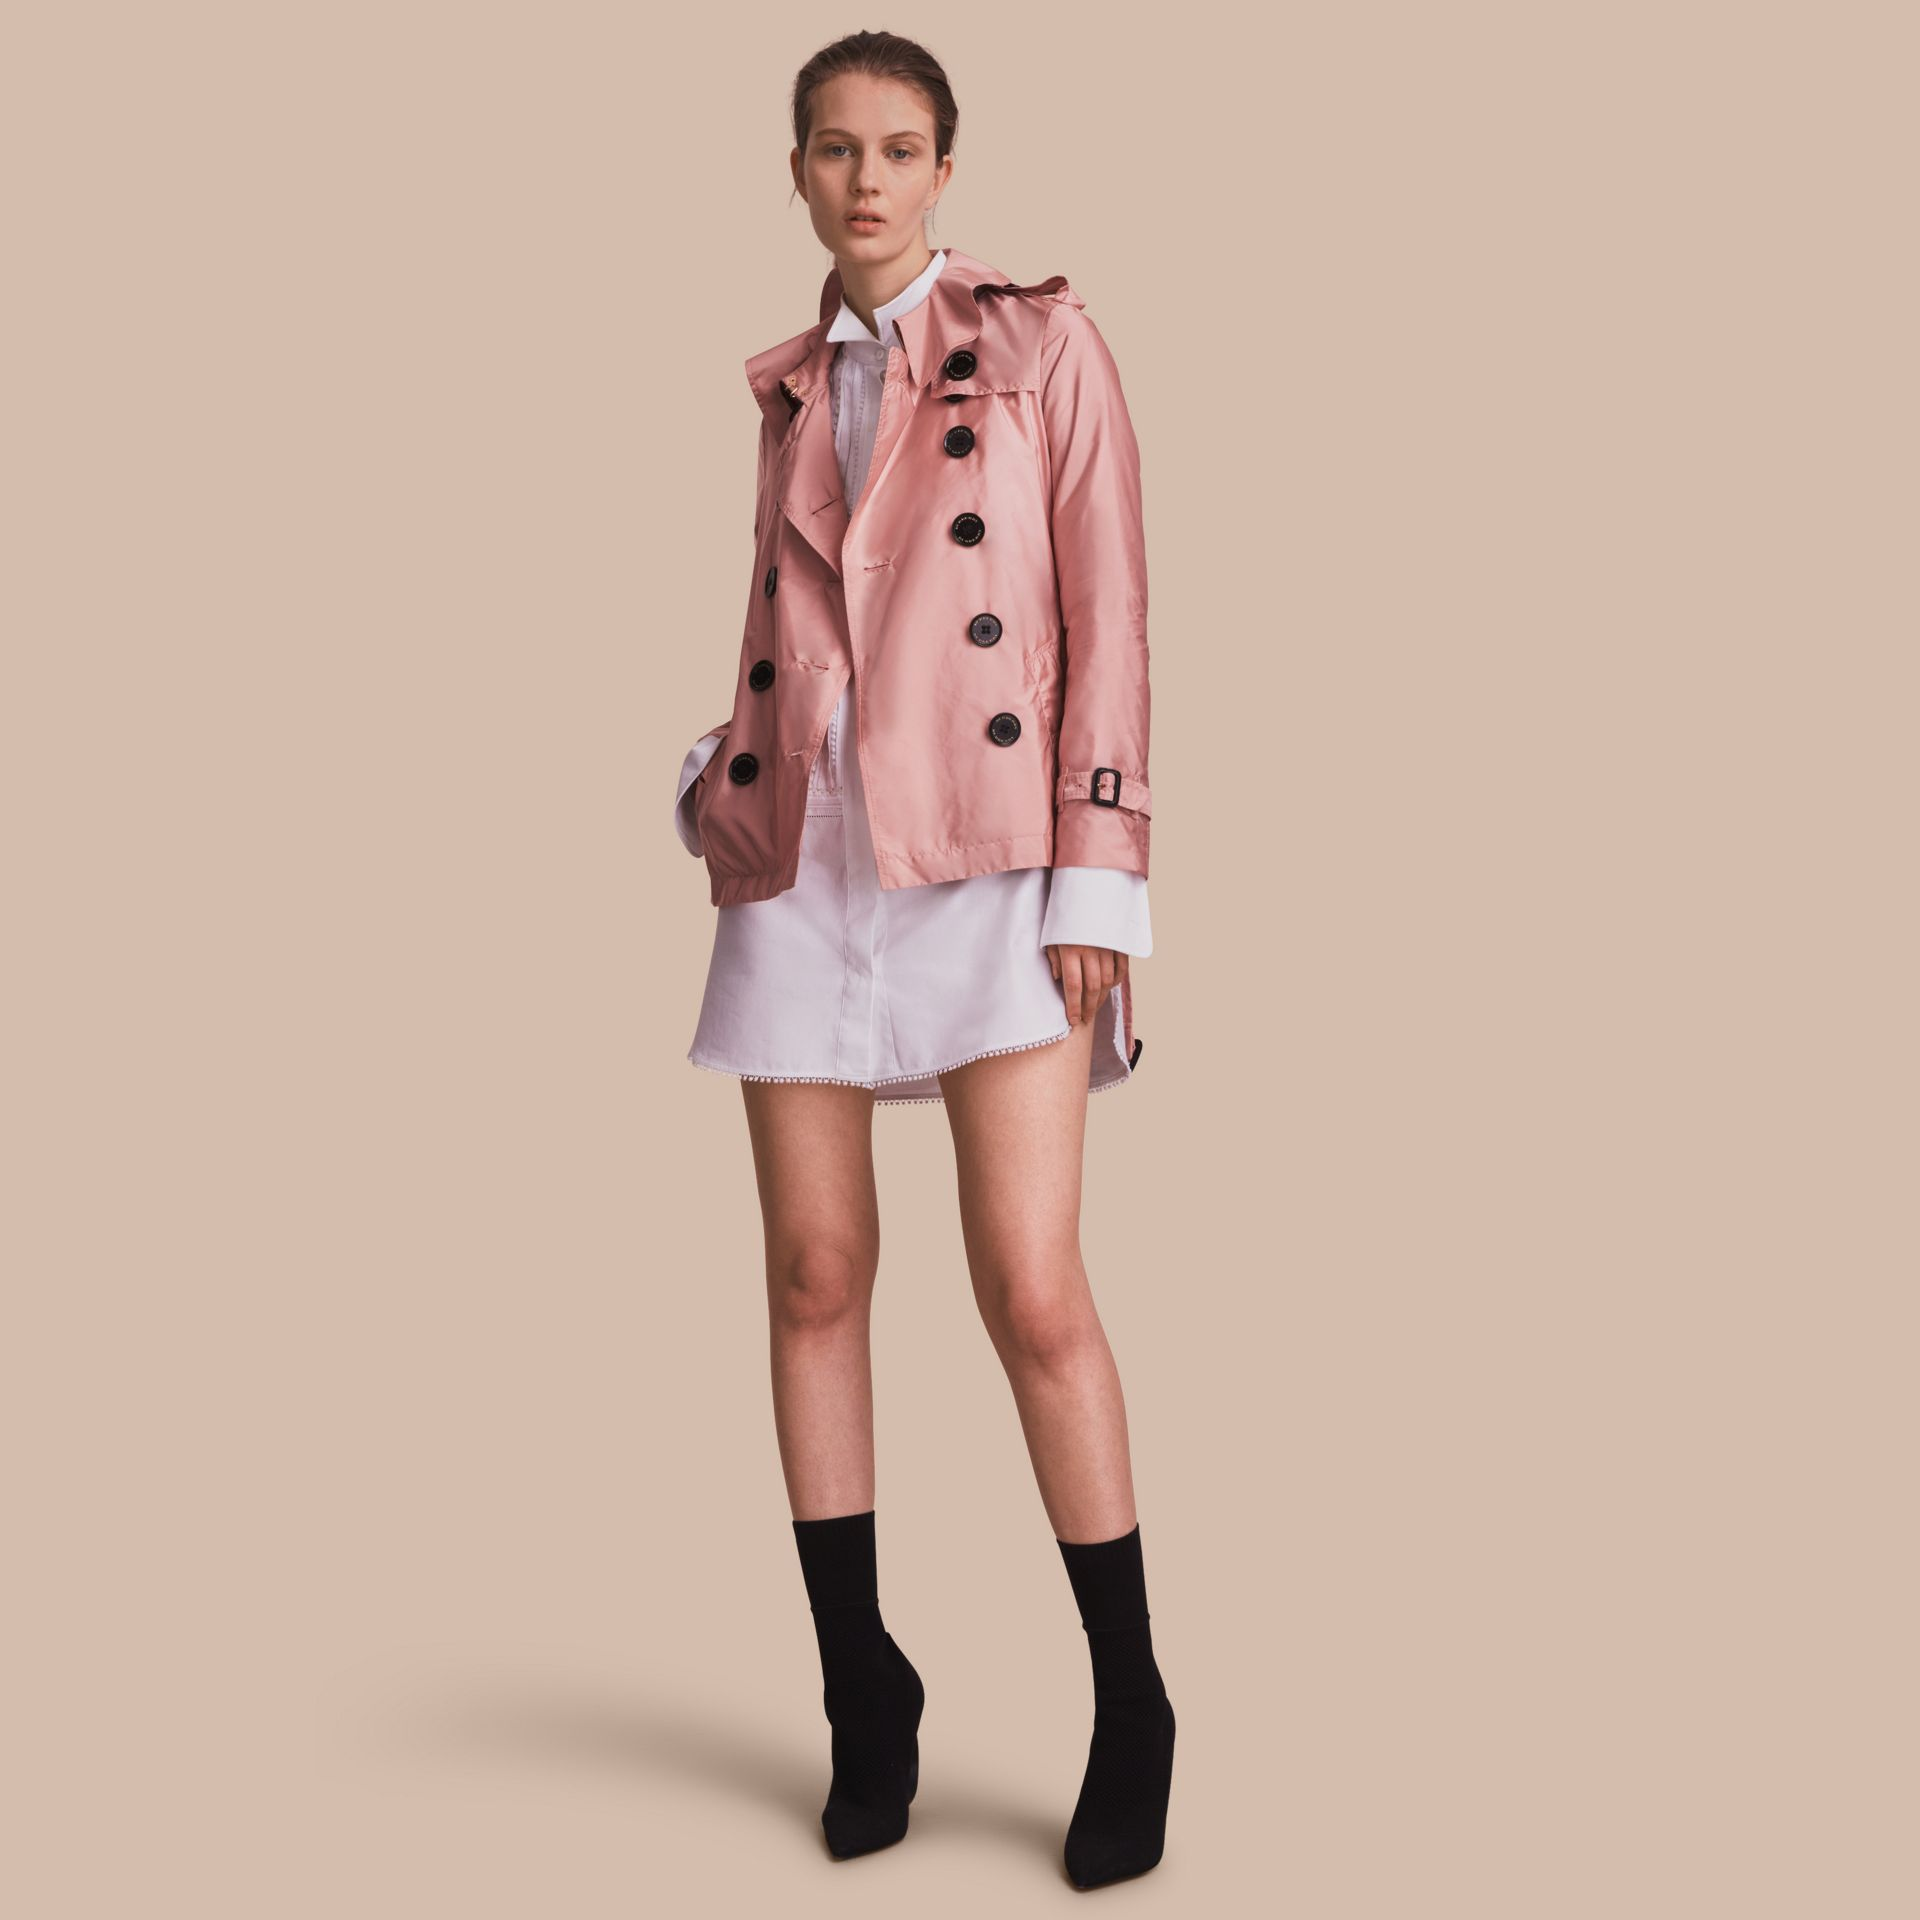 Showerproof Trench Coat in Antique Rose - Women | Burberry - gallery image 1